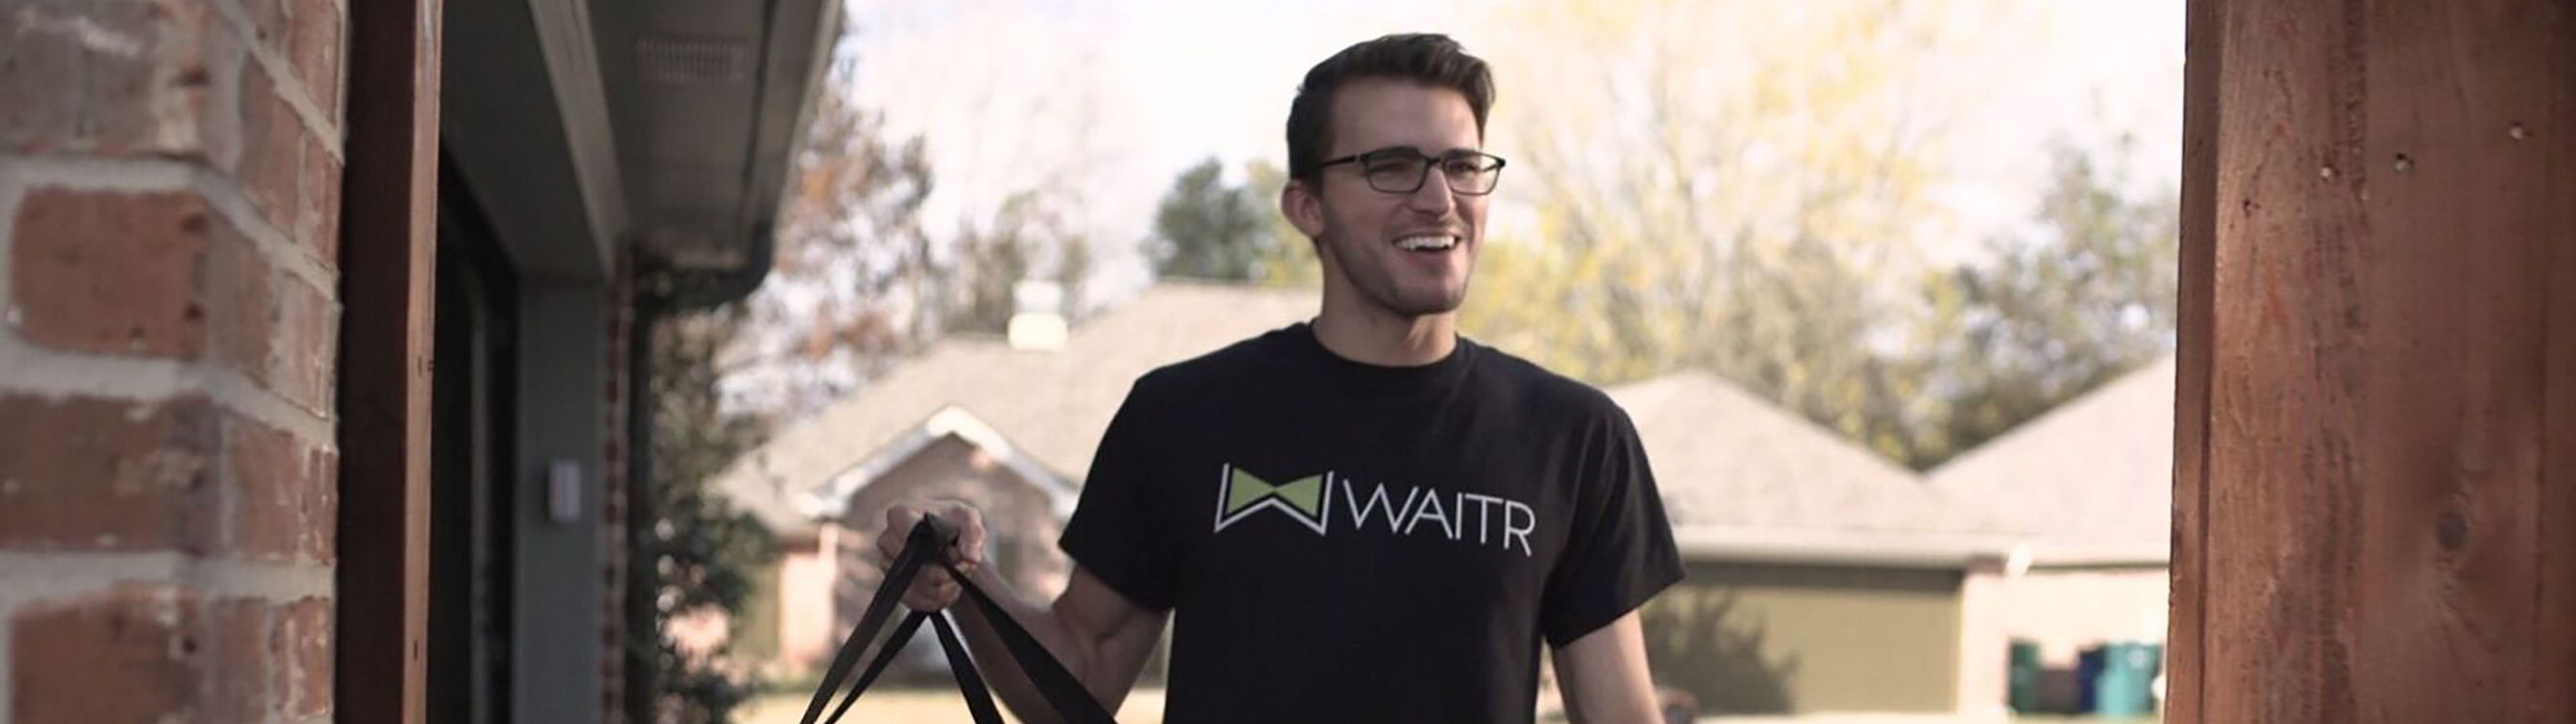 Waitr Delivery Person